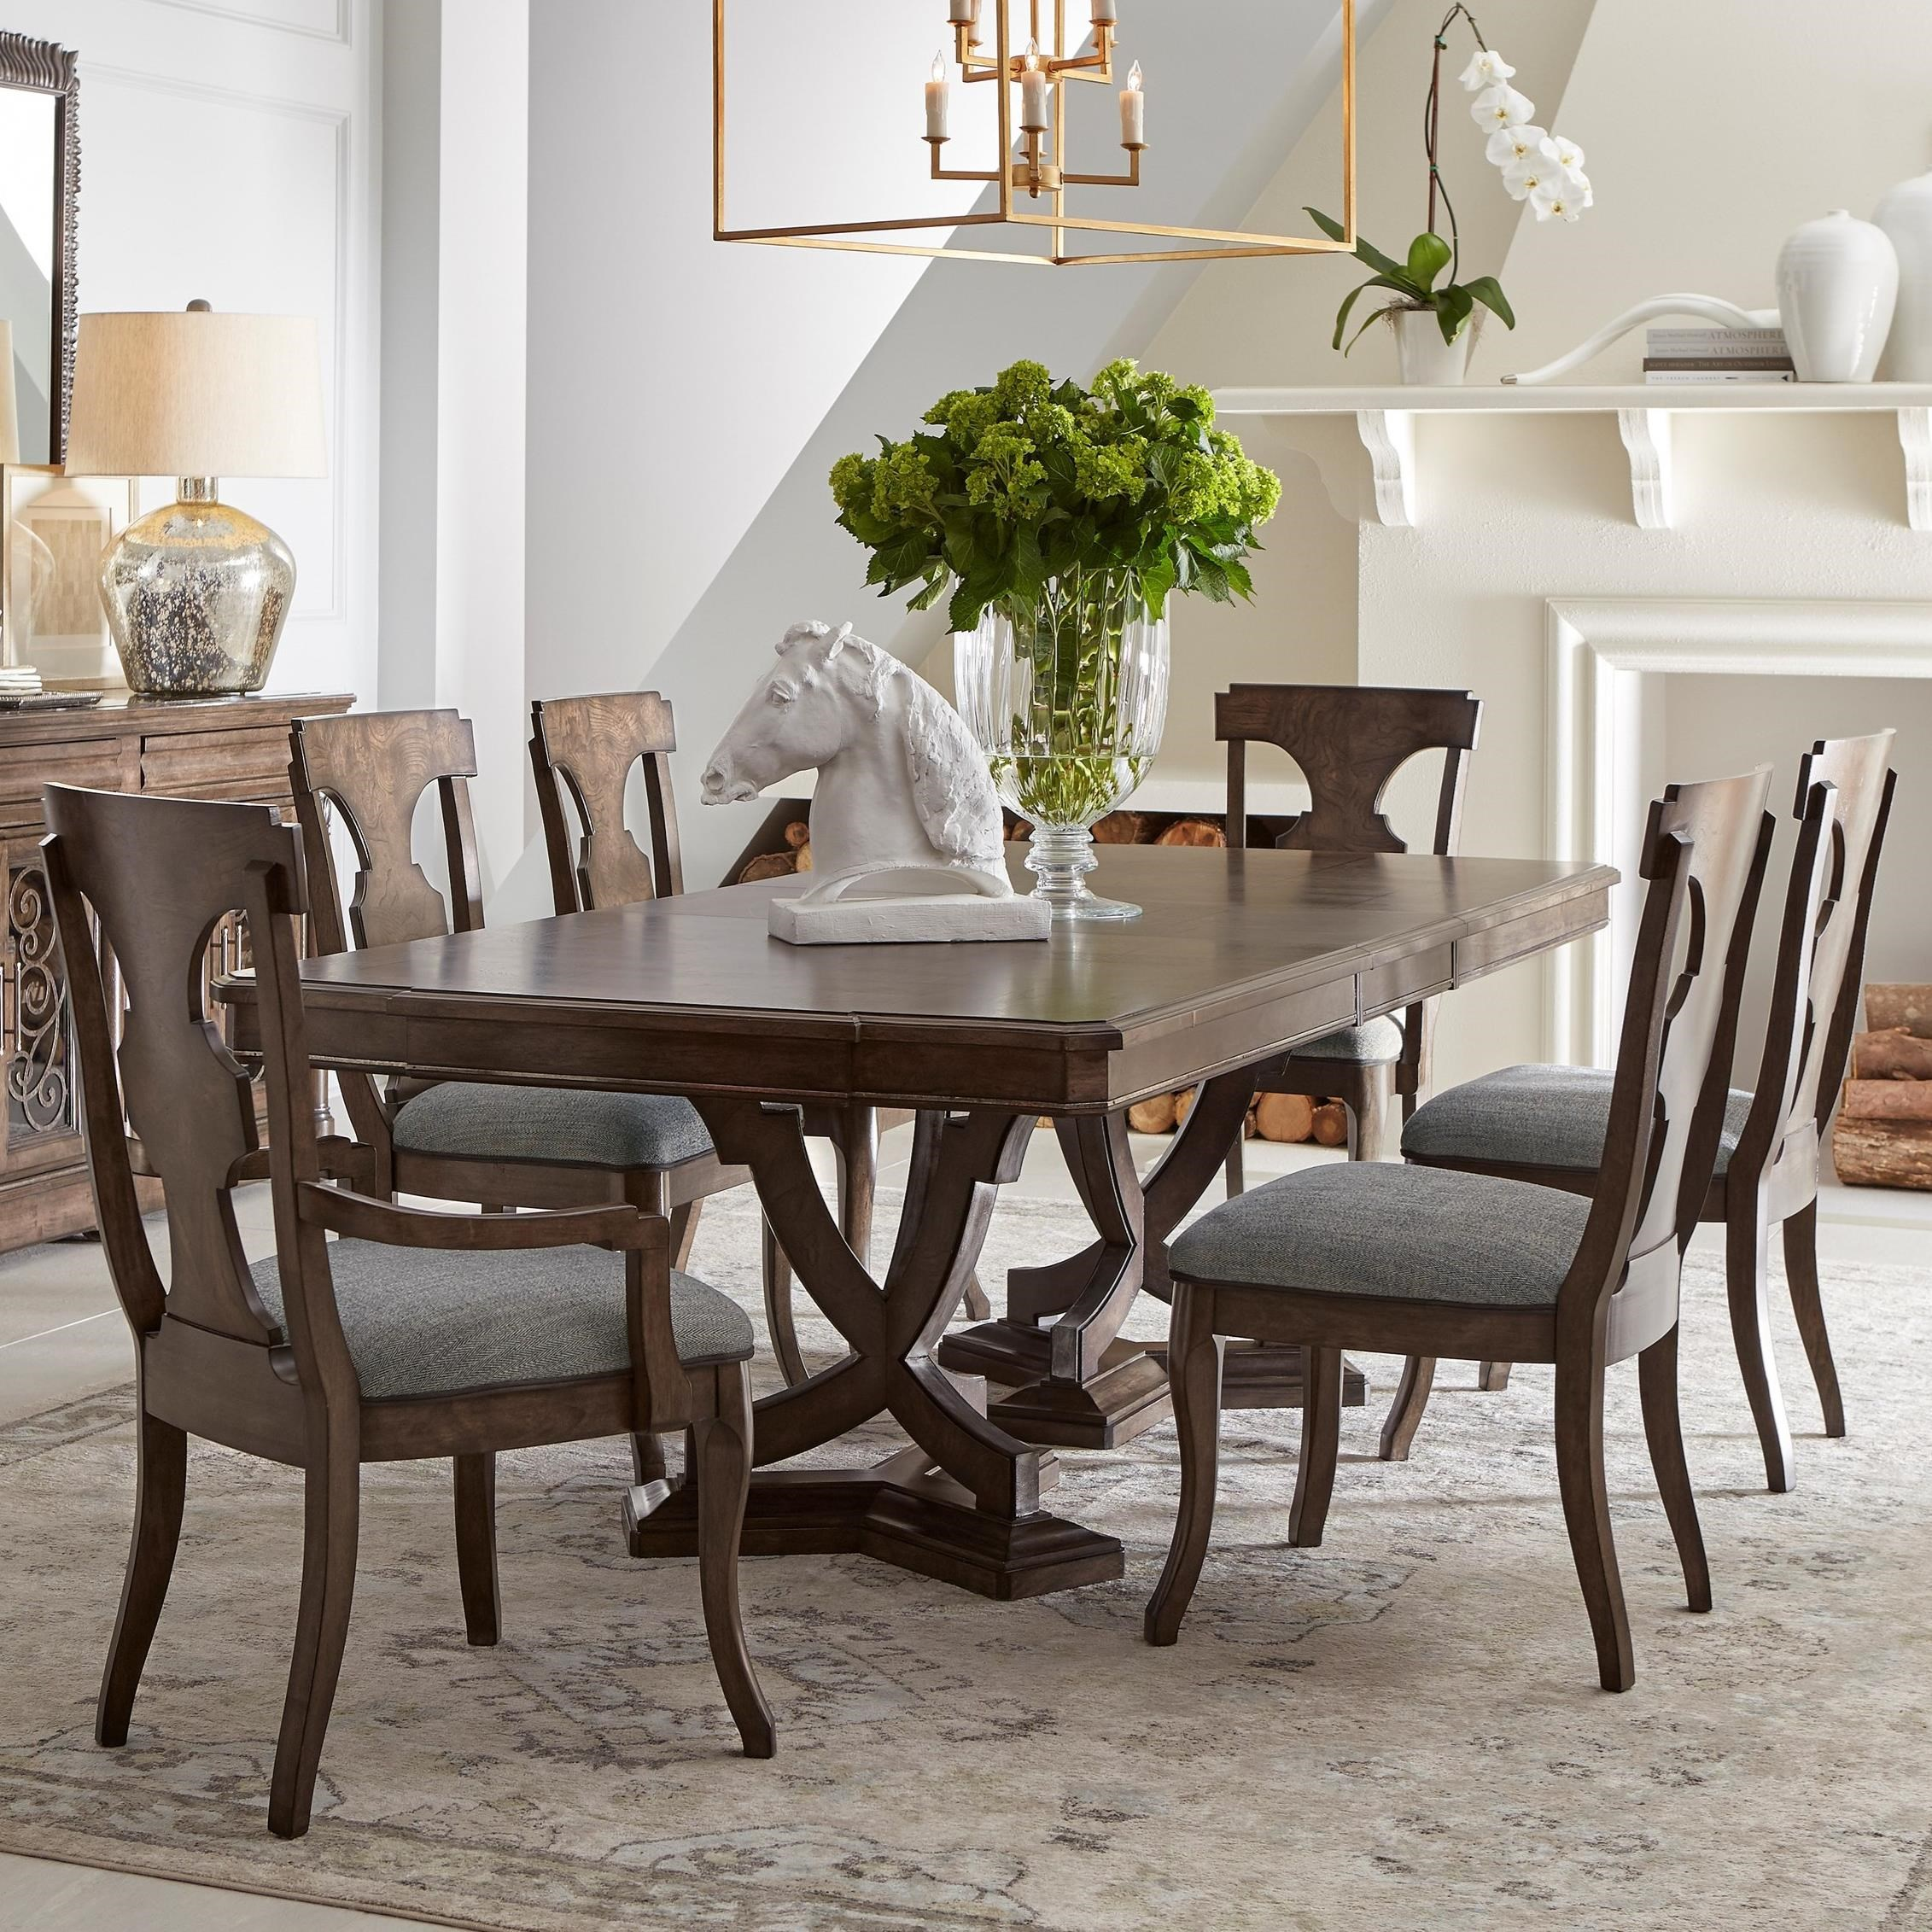 Landmark 7-Piece Double Pedestal Table and Chair Set by Klien Furniture at Sprintz Furniture